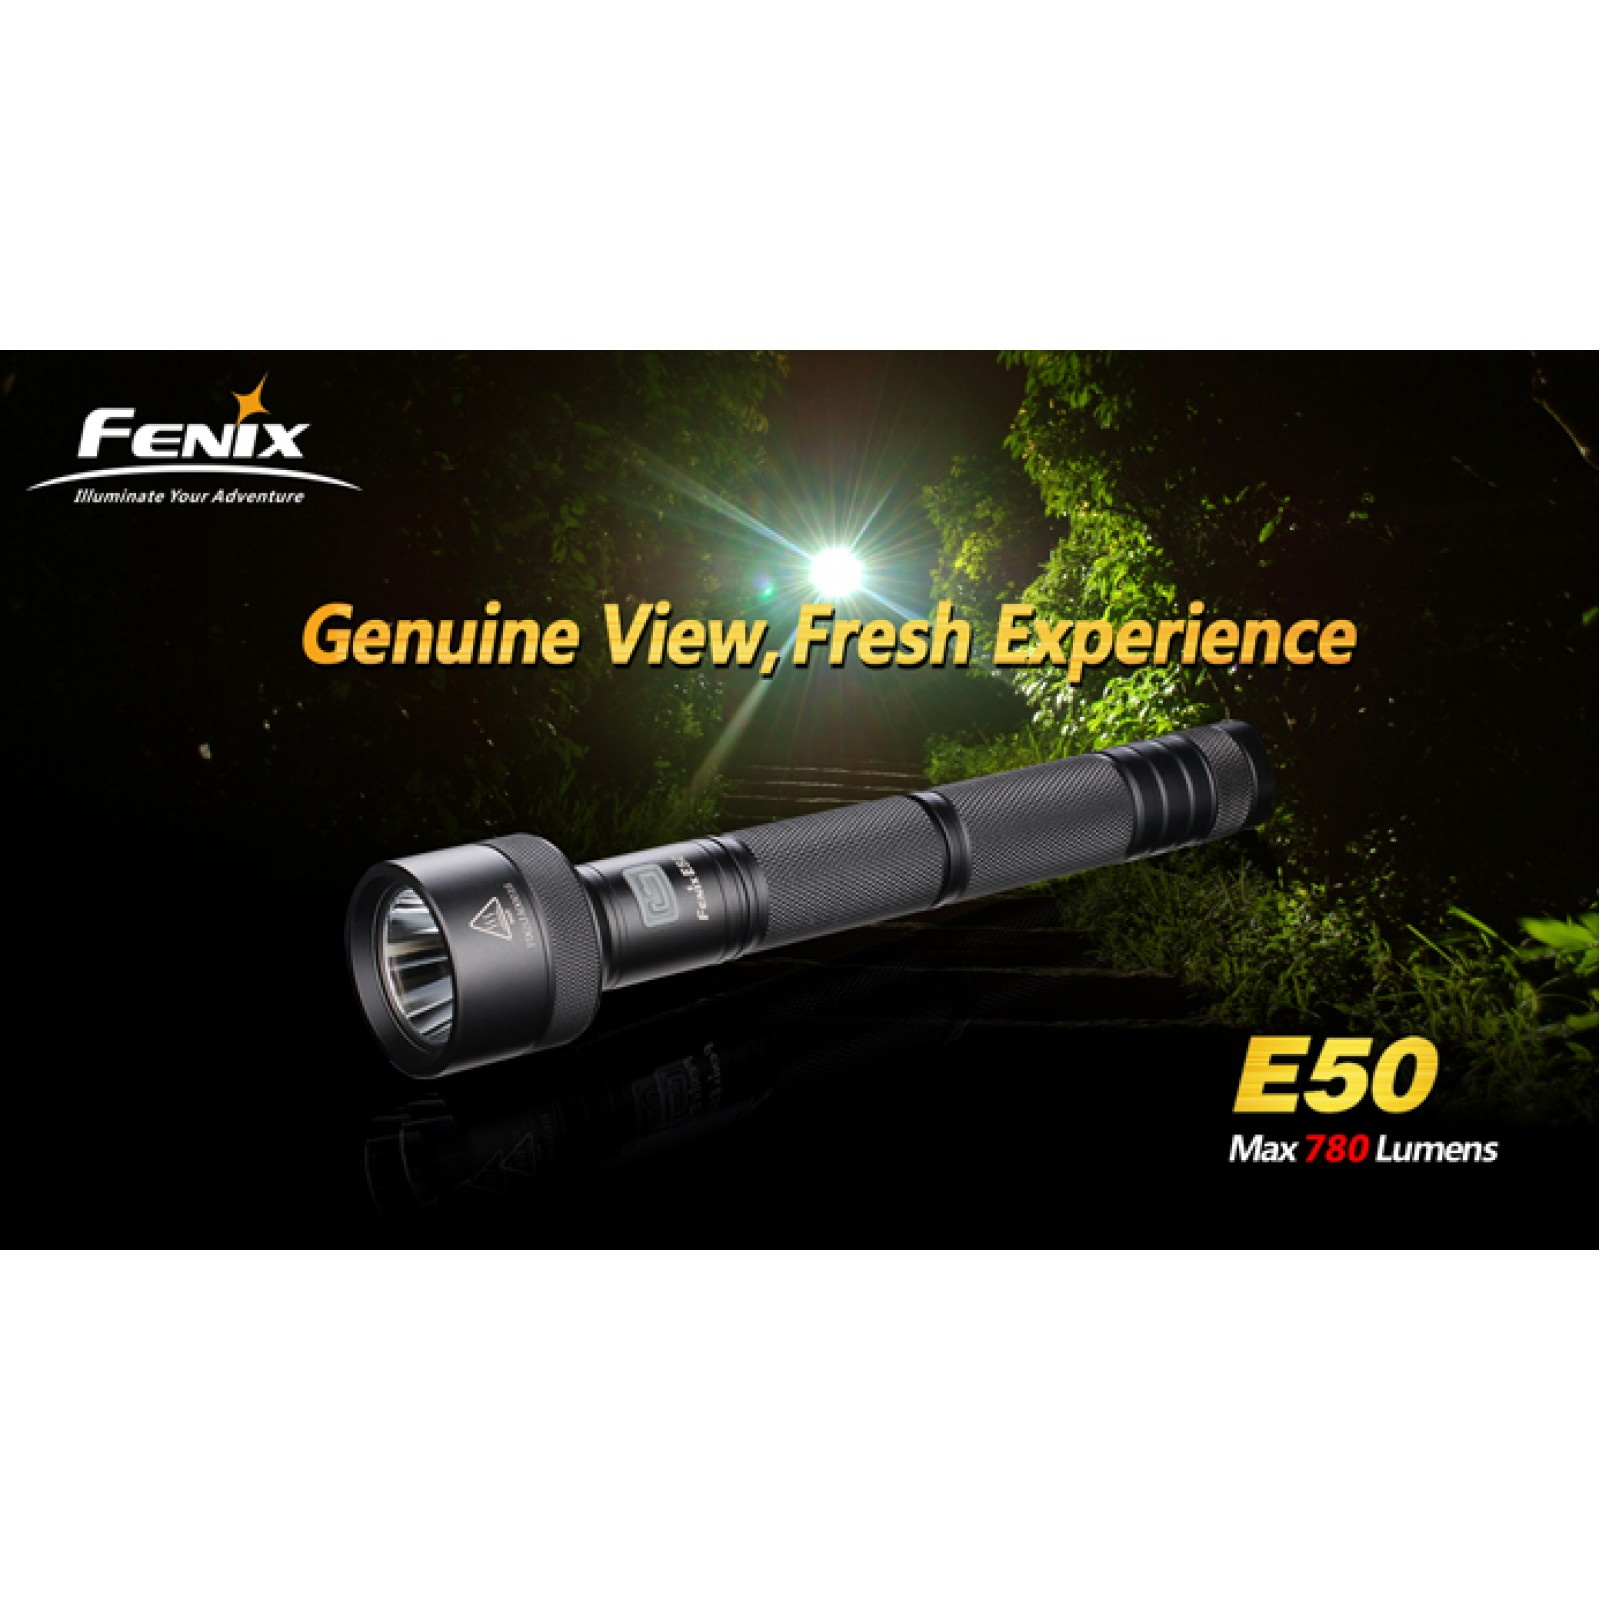 Fenix E50 XM-L (T6) LED Flashlight